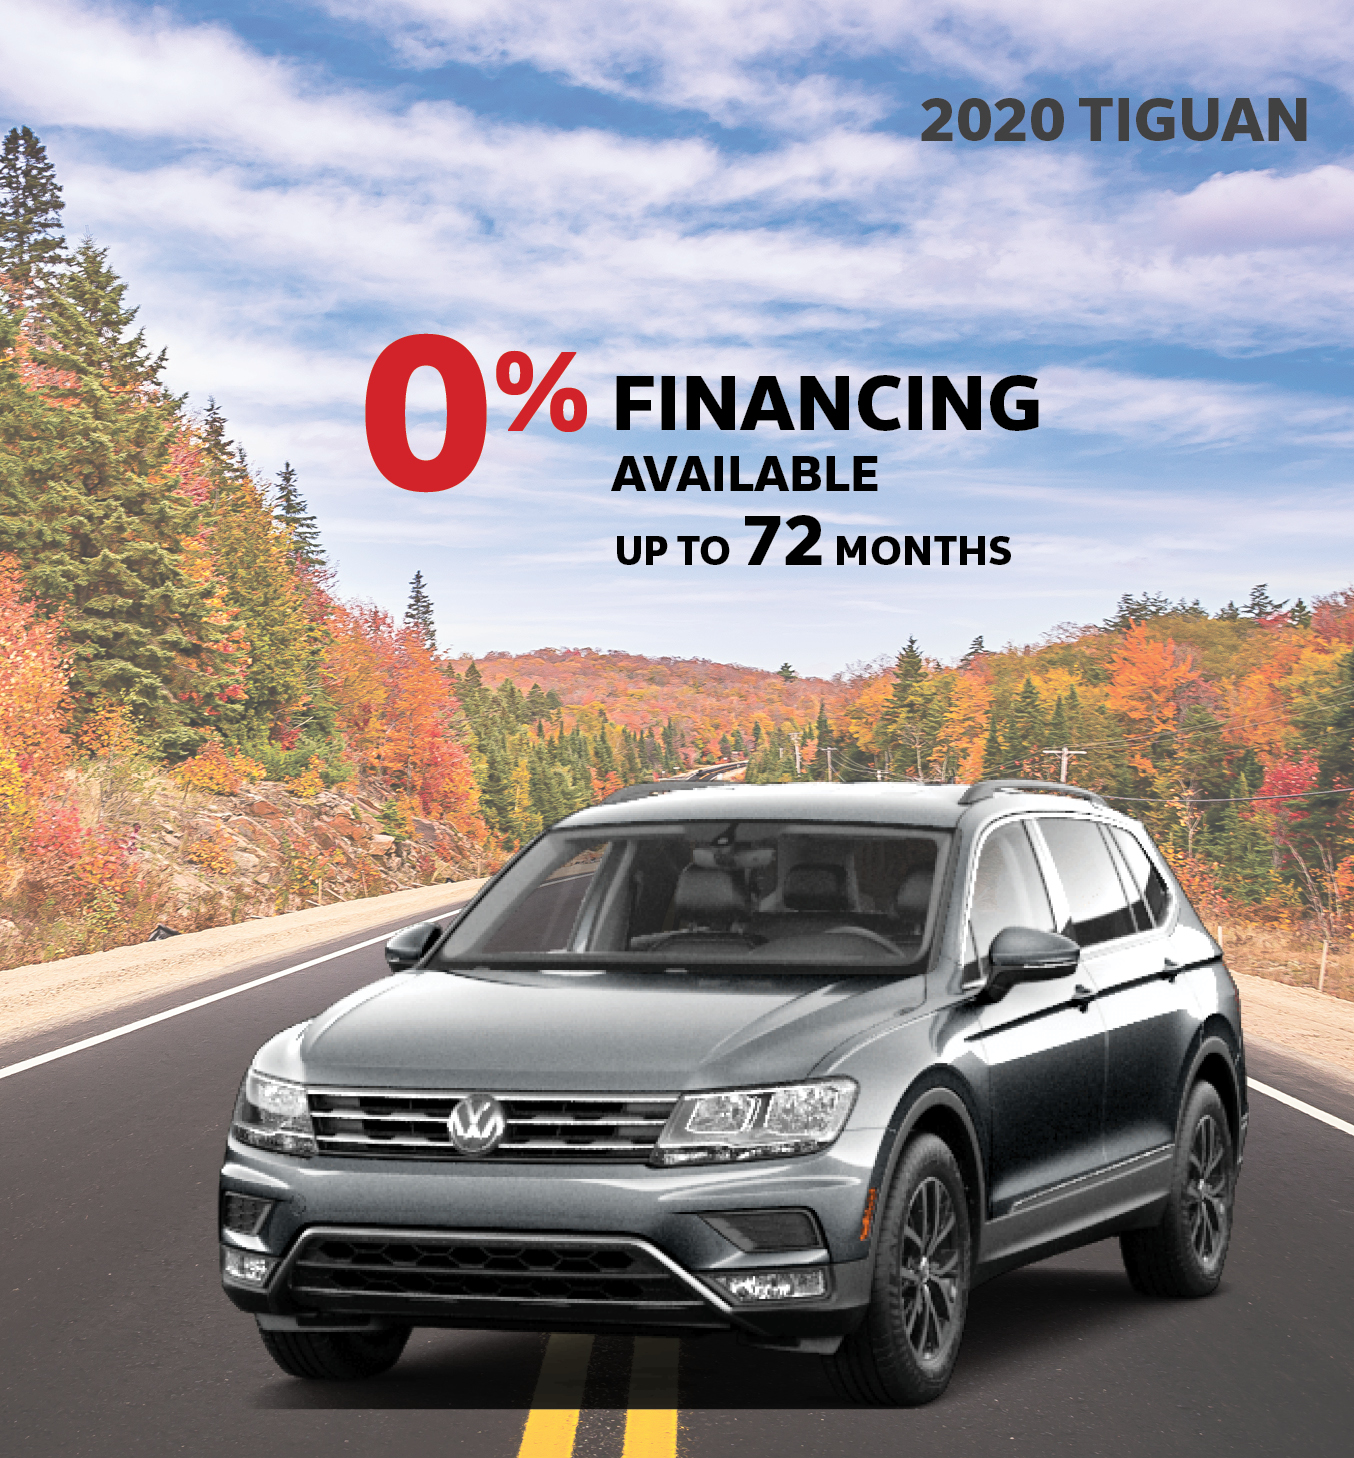 0% Financing Available For 72 Months